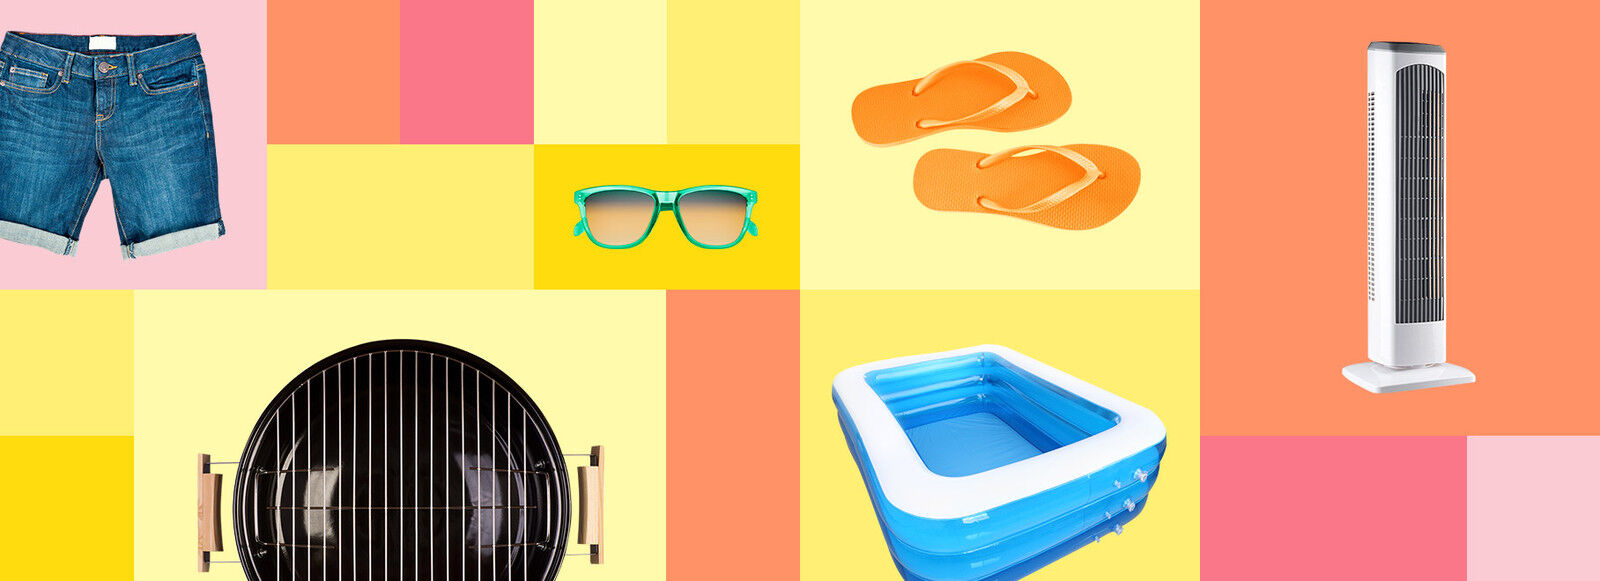 Keep your cool – find your thing and beat the heat.